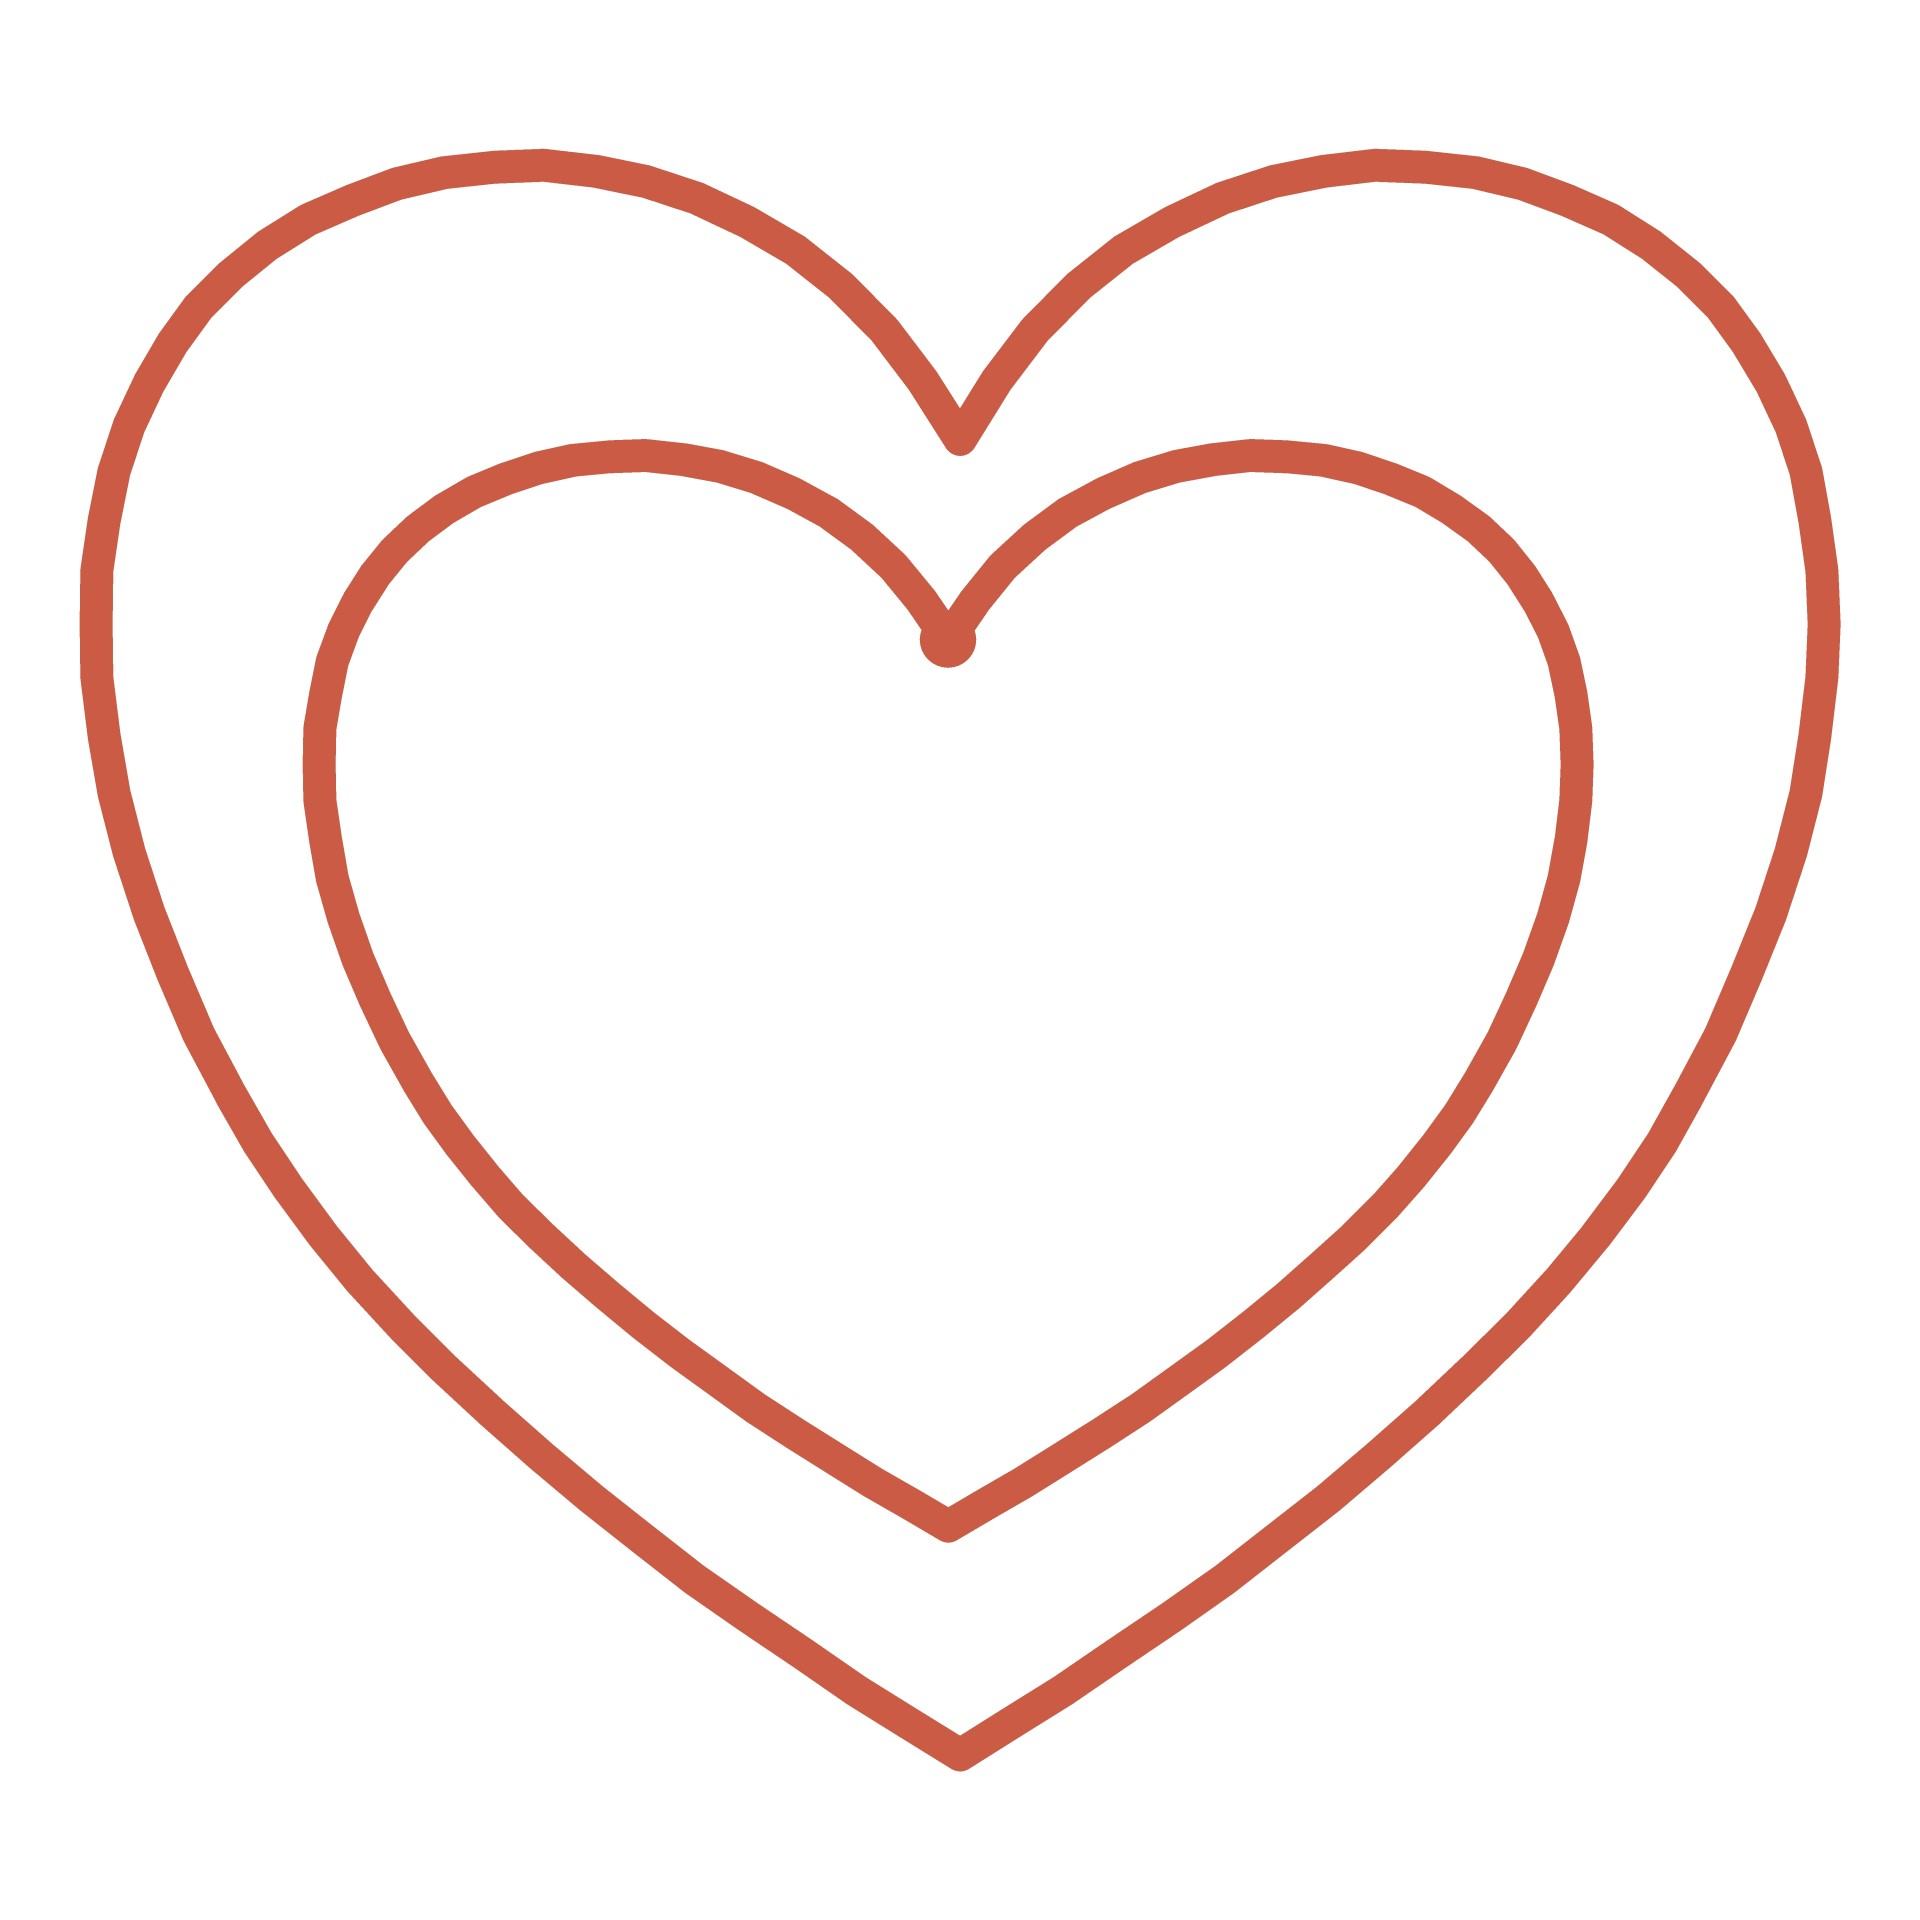 1920x1920 Two Hearts Outline Free Clipart